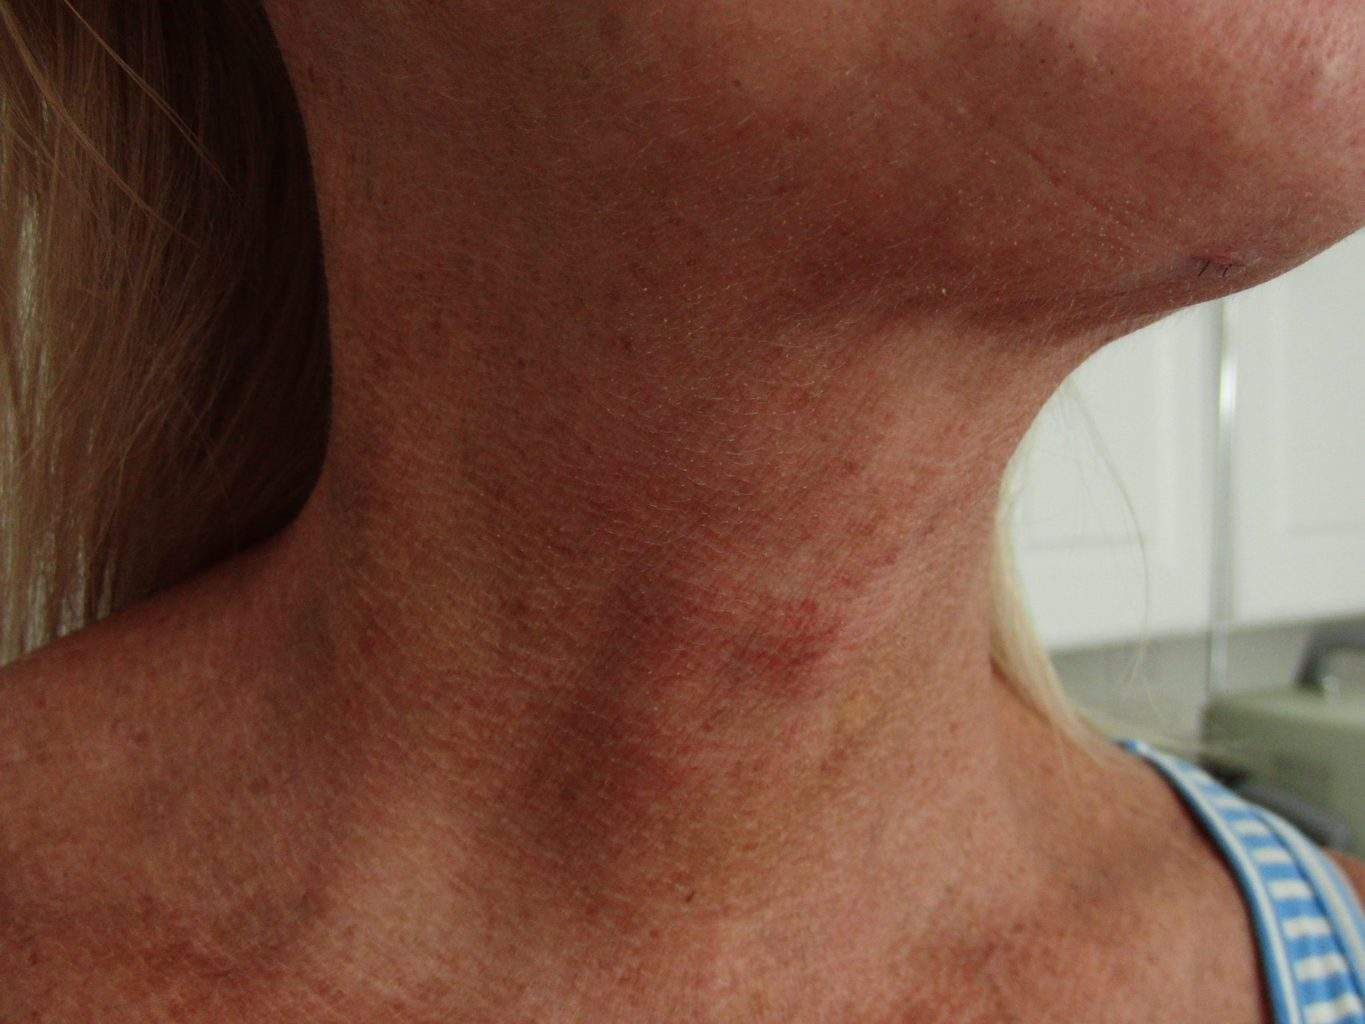 Post Op image of excellent Smartlipo Neck Liposuction